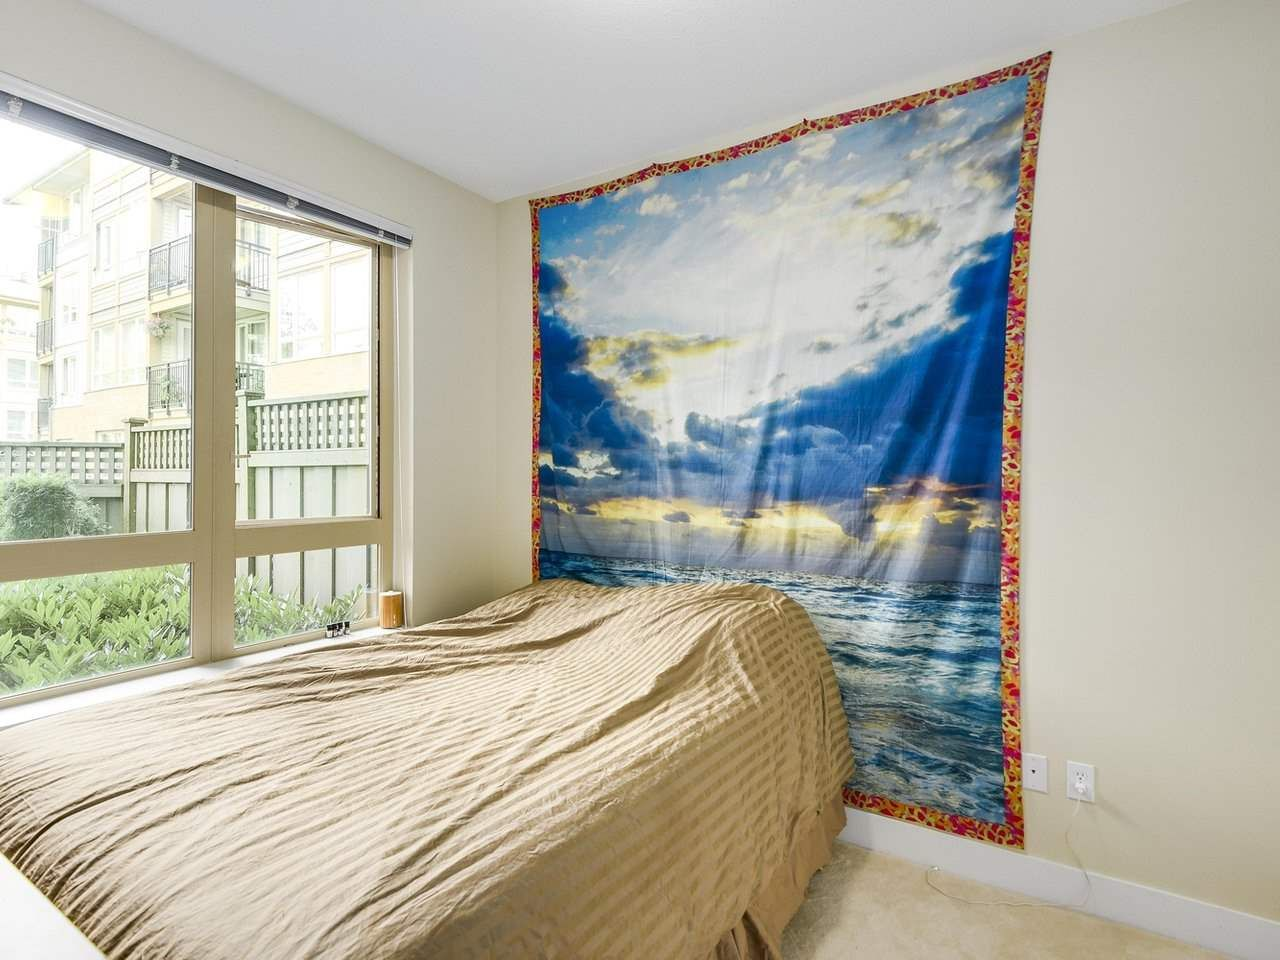 Photo 11: Photos: 106 2601 WHITELEY COURT in North Vancouver: Lynn Valley Condo for sale : MLS®# R2186381